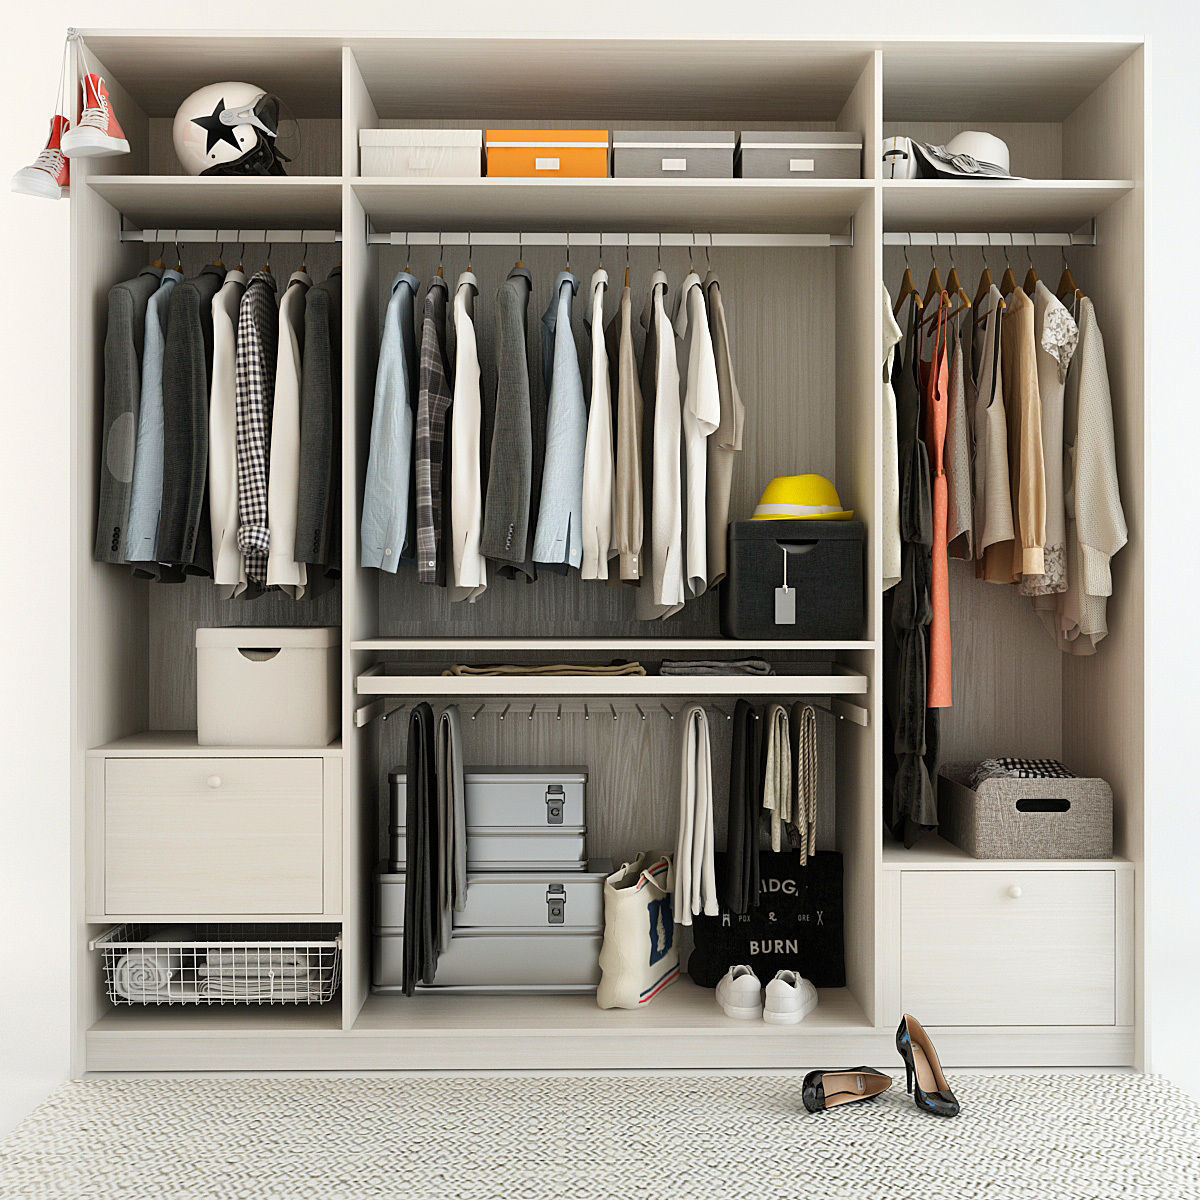 Wardrobe With Things 2